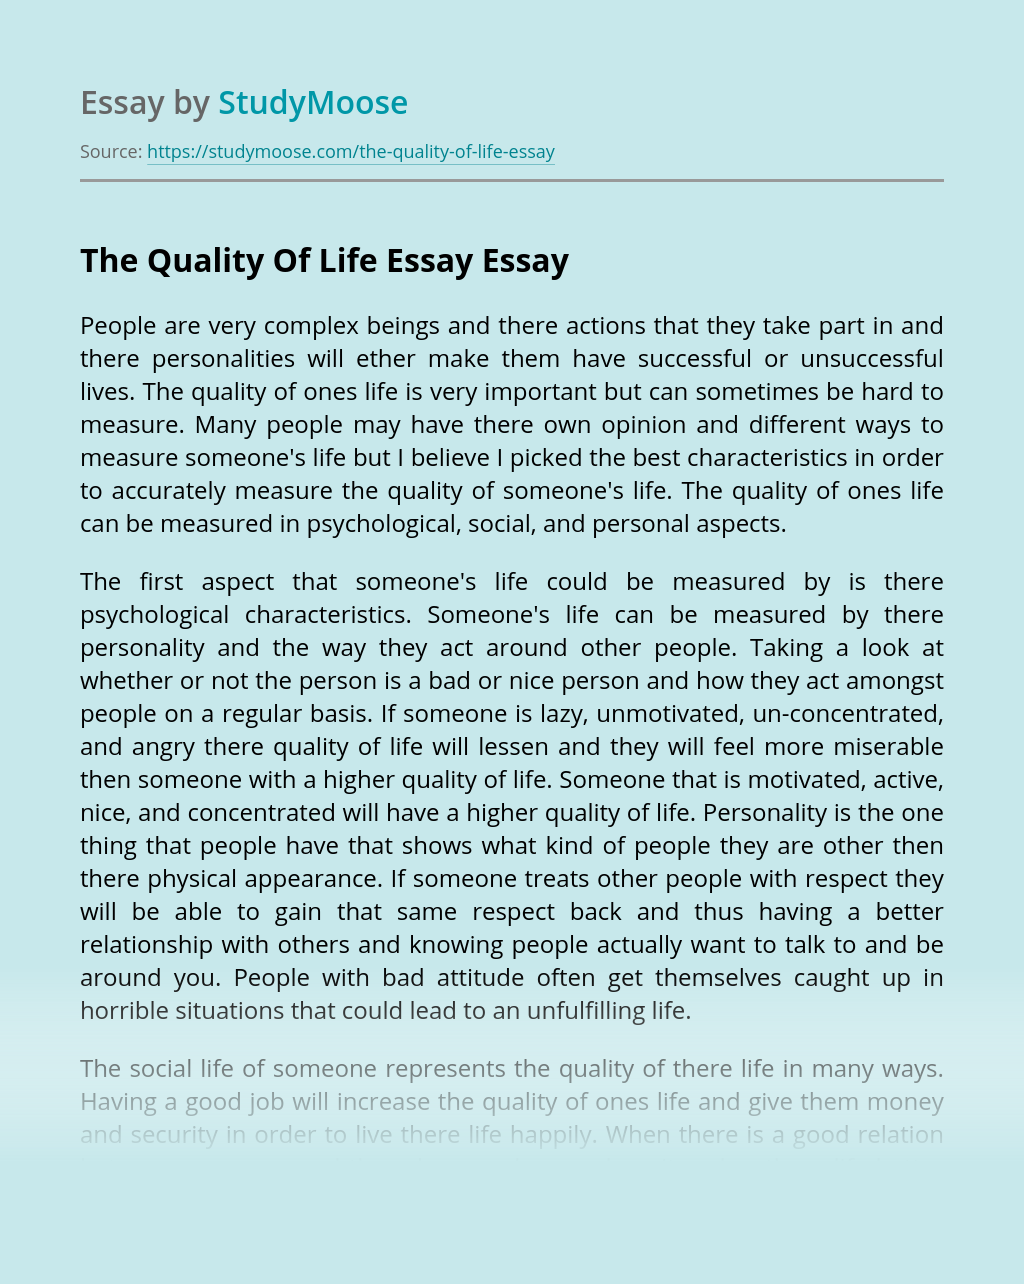 The Quality Of Life Essay